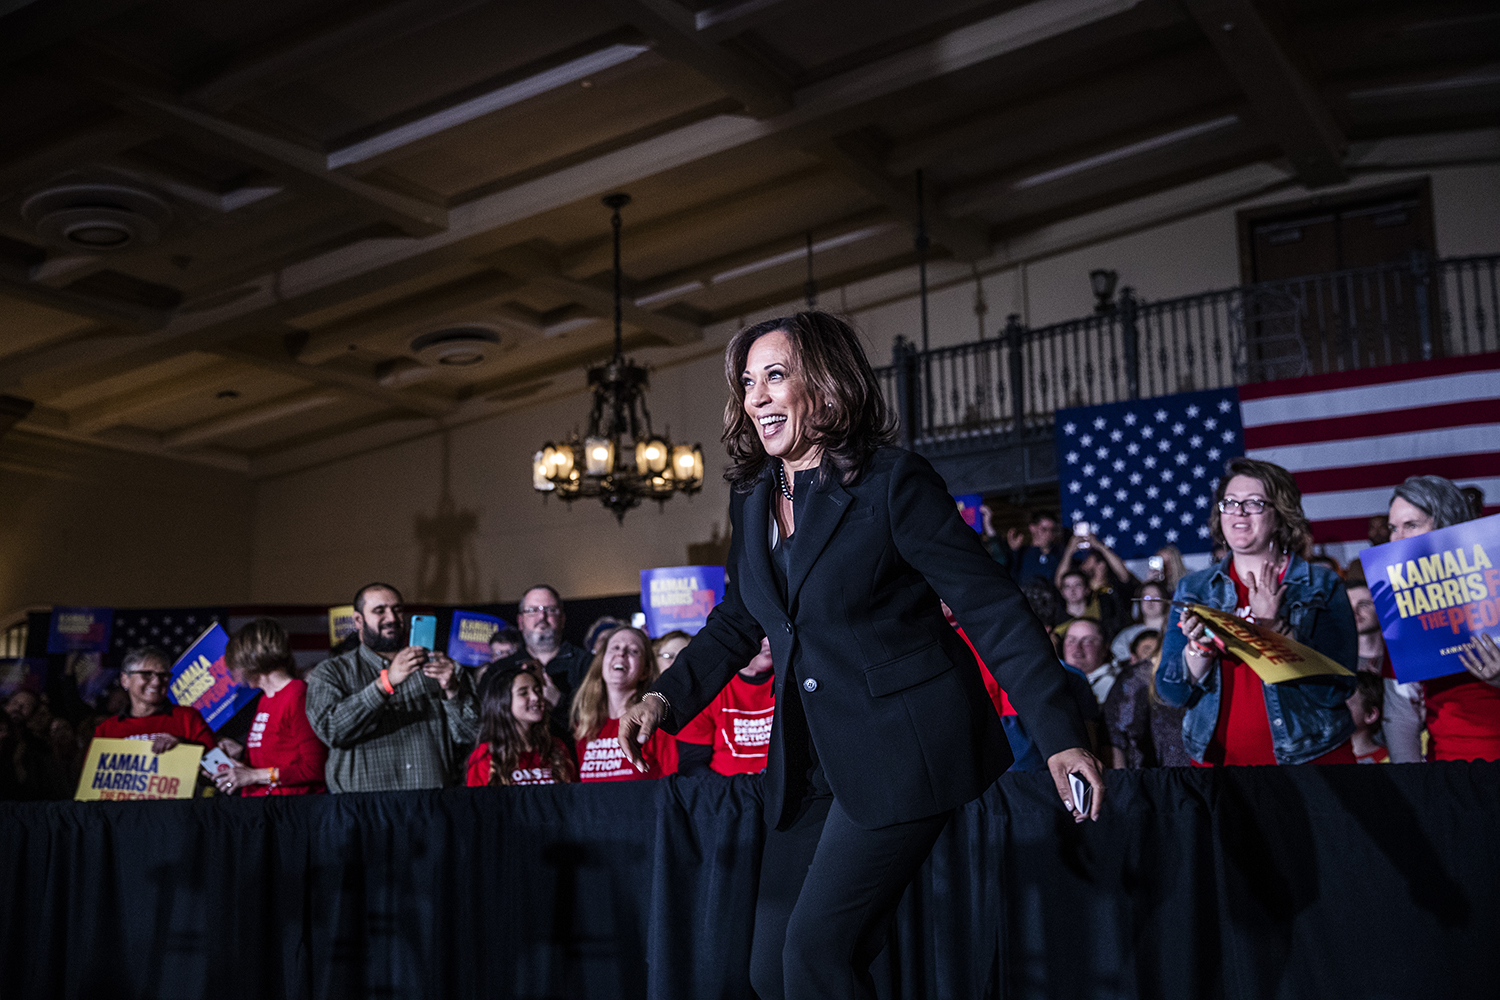 Sen. Kamala Harris, D-Calif. walks on stage during a town hall at the IMU on Wednesday, April 10, 2019. Harris is running for president in the 2020 election.